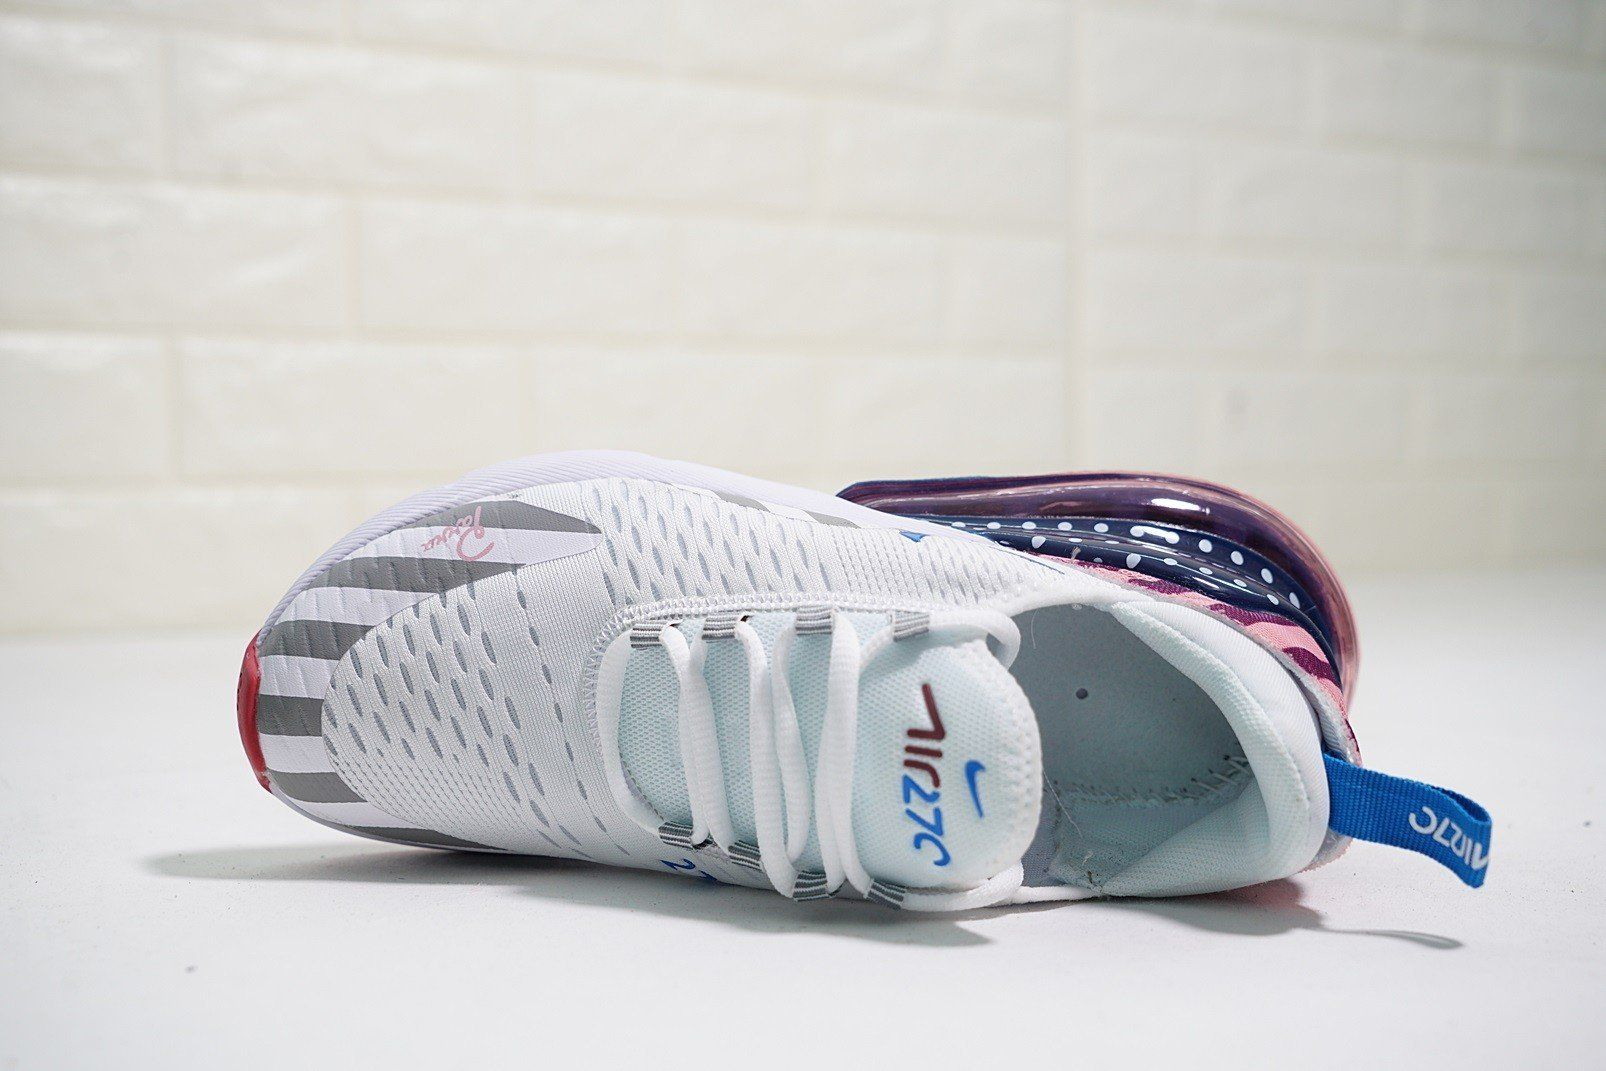 sports shoes d79b1 05385 Nike Air Max 270 'Parra' Colorful 2018 in 2019 | Sneakers ...